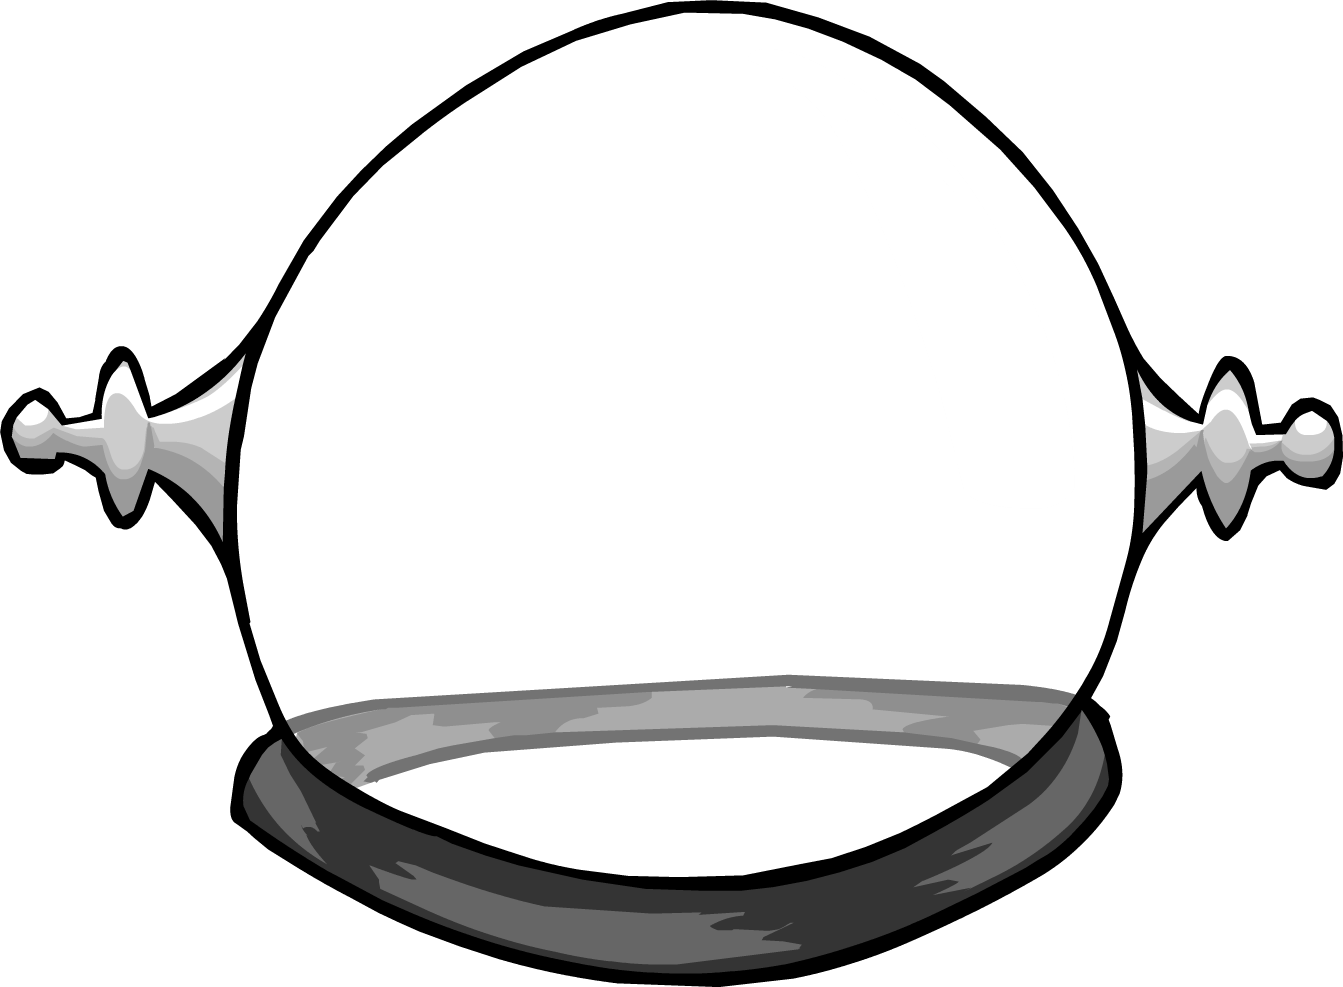 Image spacehelmet club penguin. Space helmet png